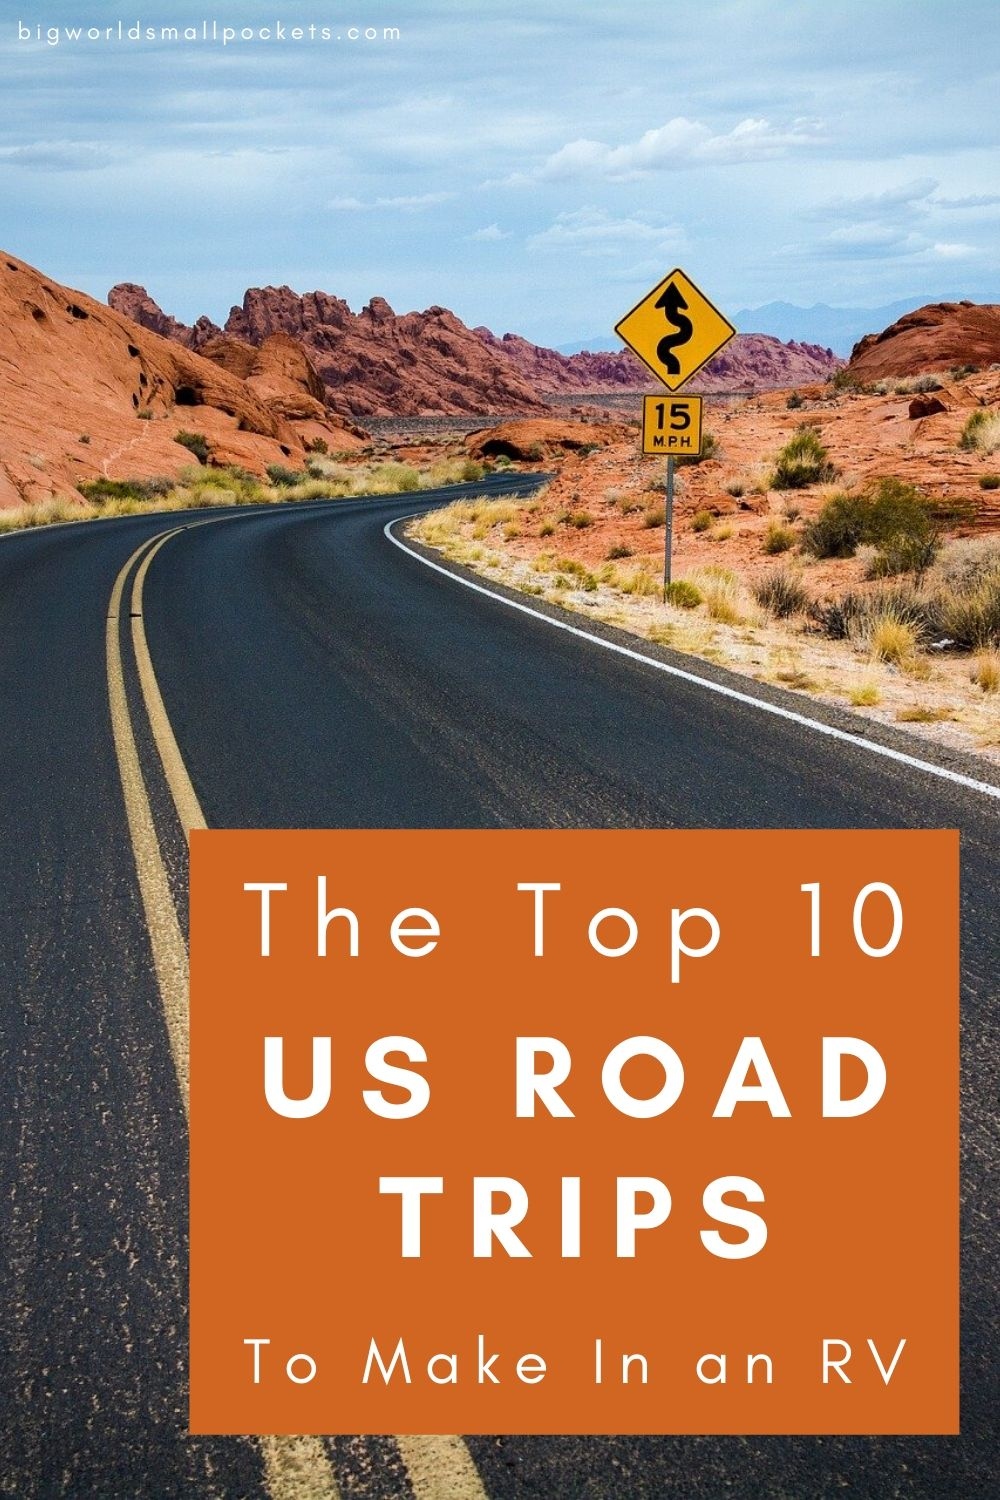 The 10 Most Epic US Road Trip to Make in an RV